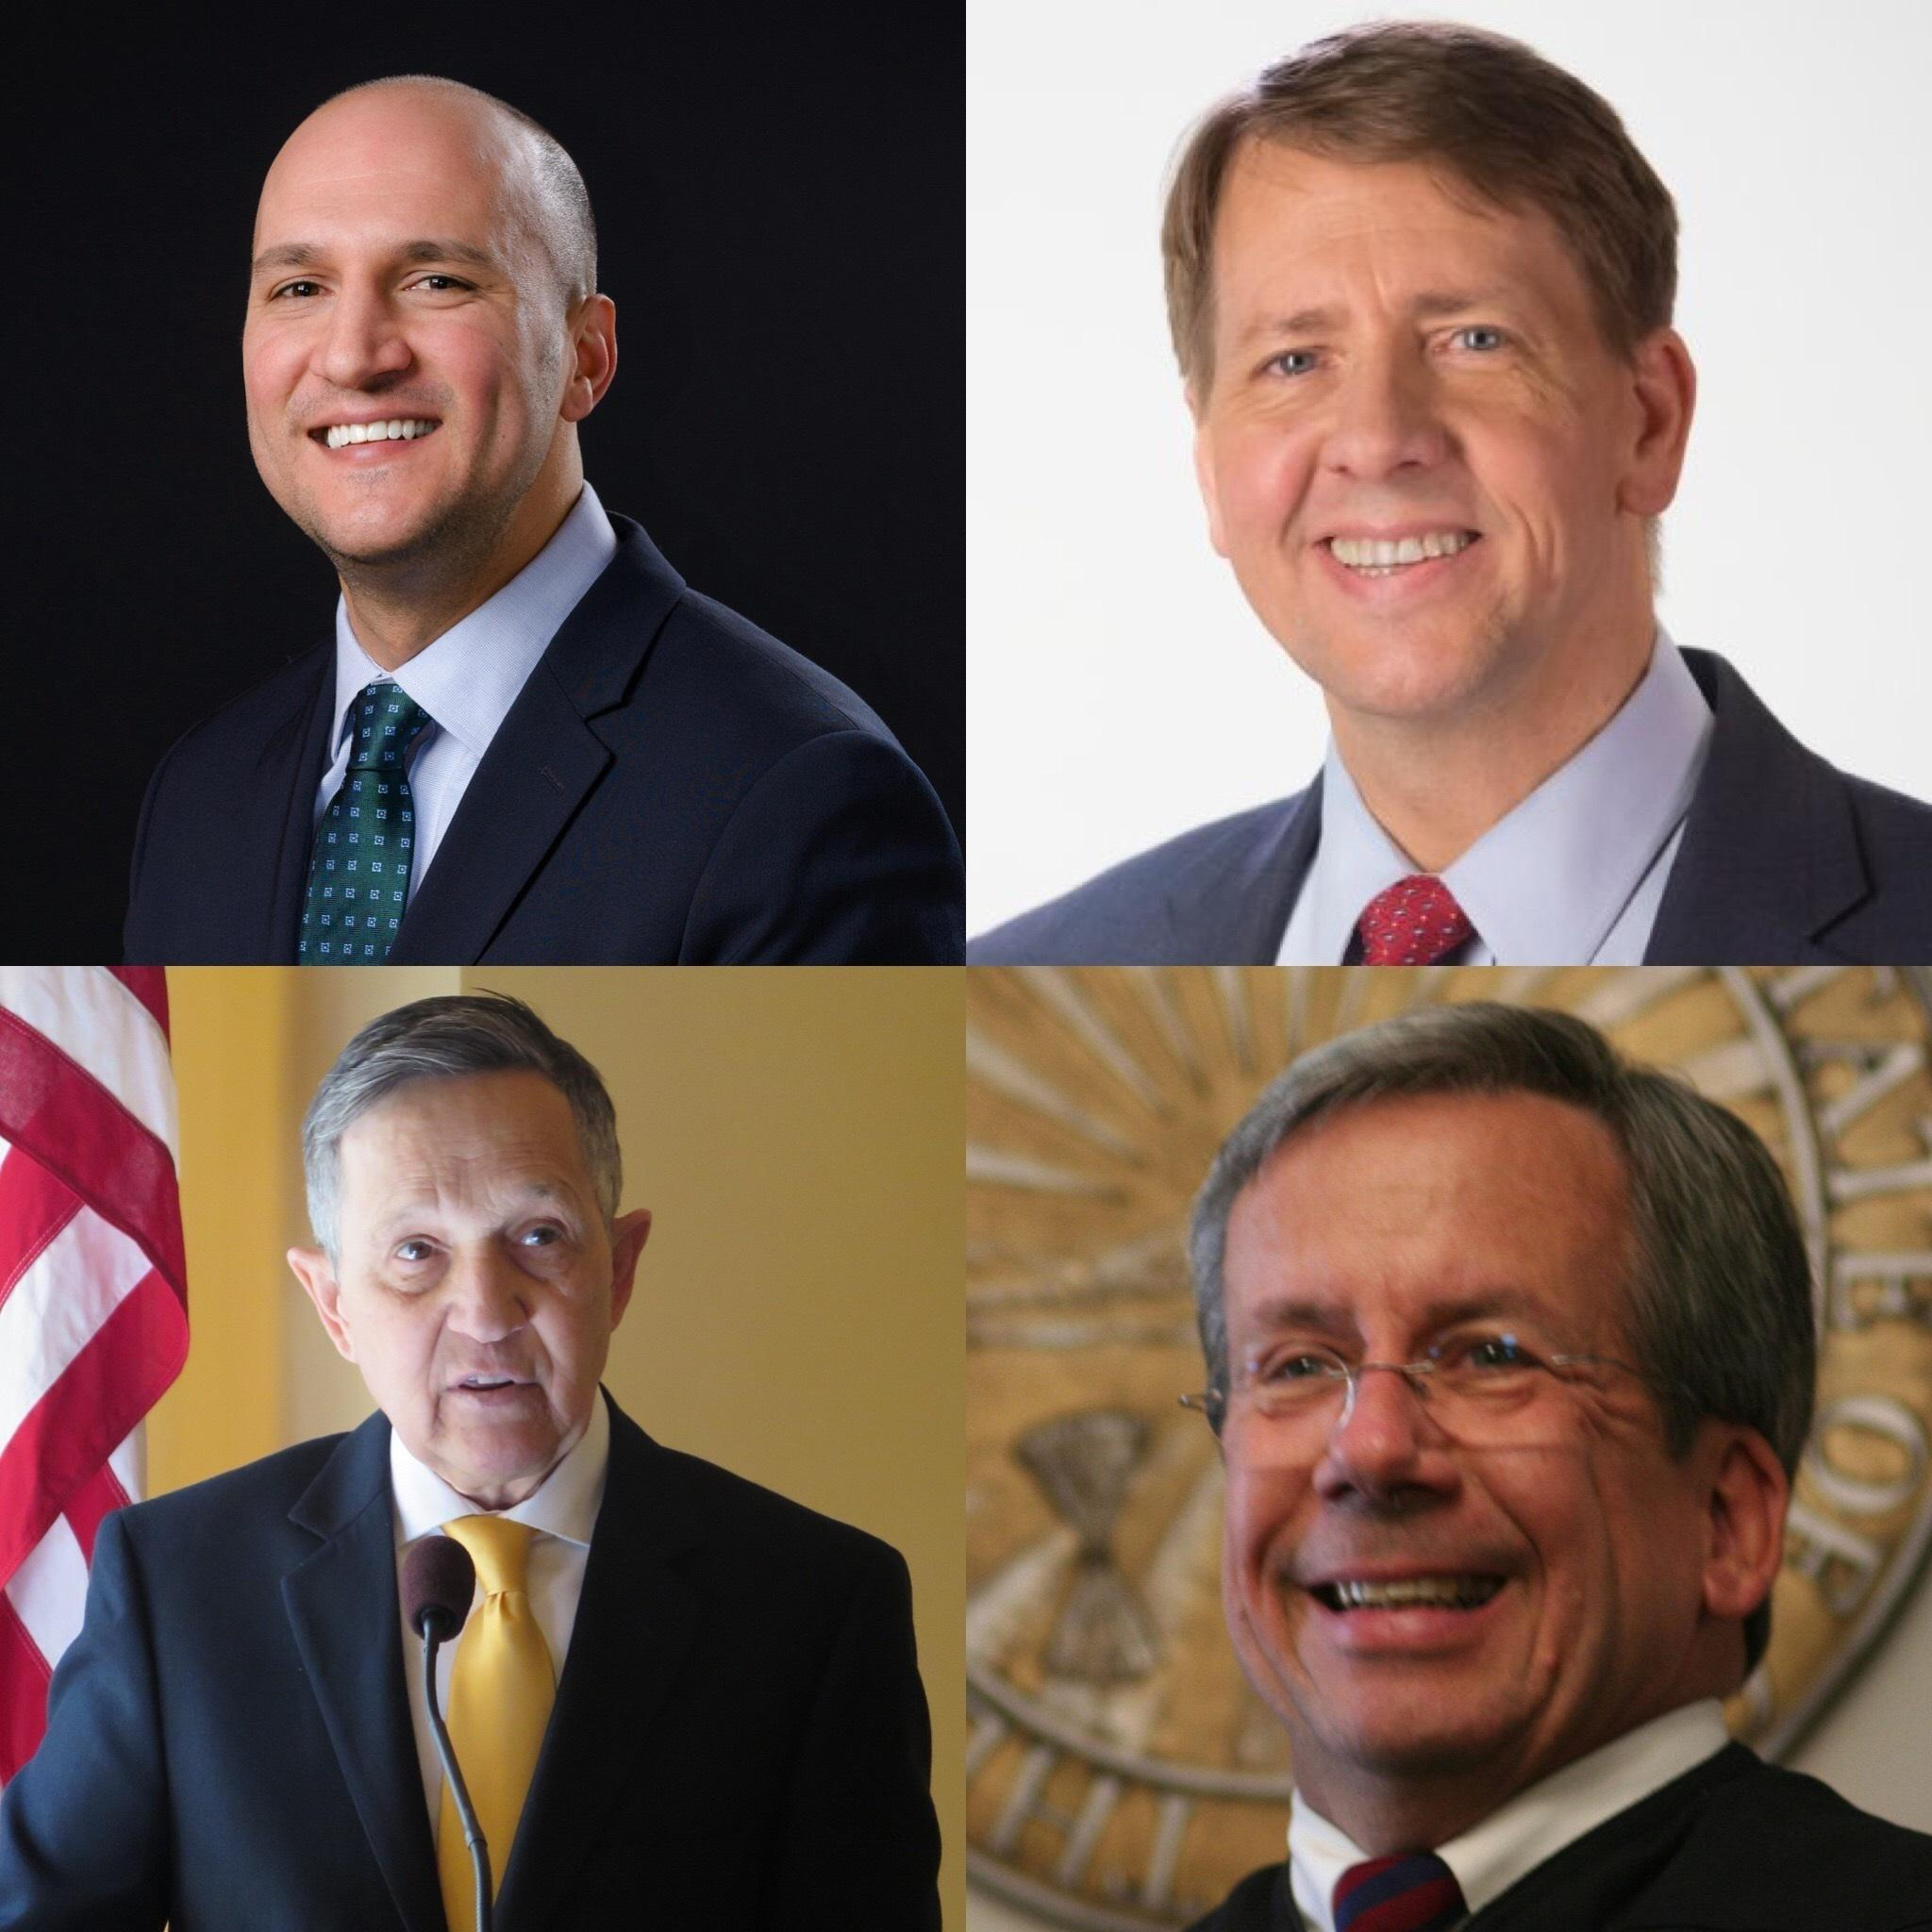 Cordray, DeWine projected to win OH gubernatorial primaries